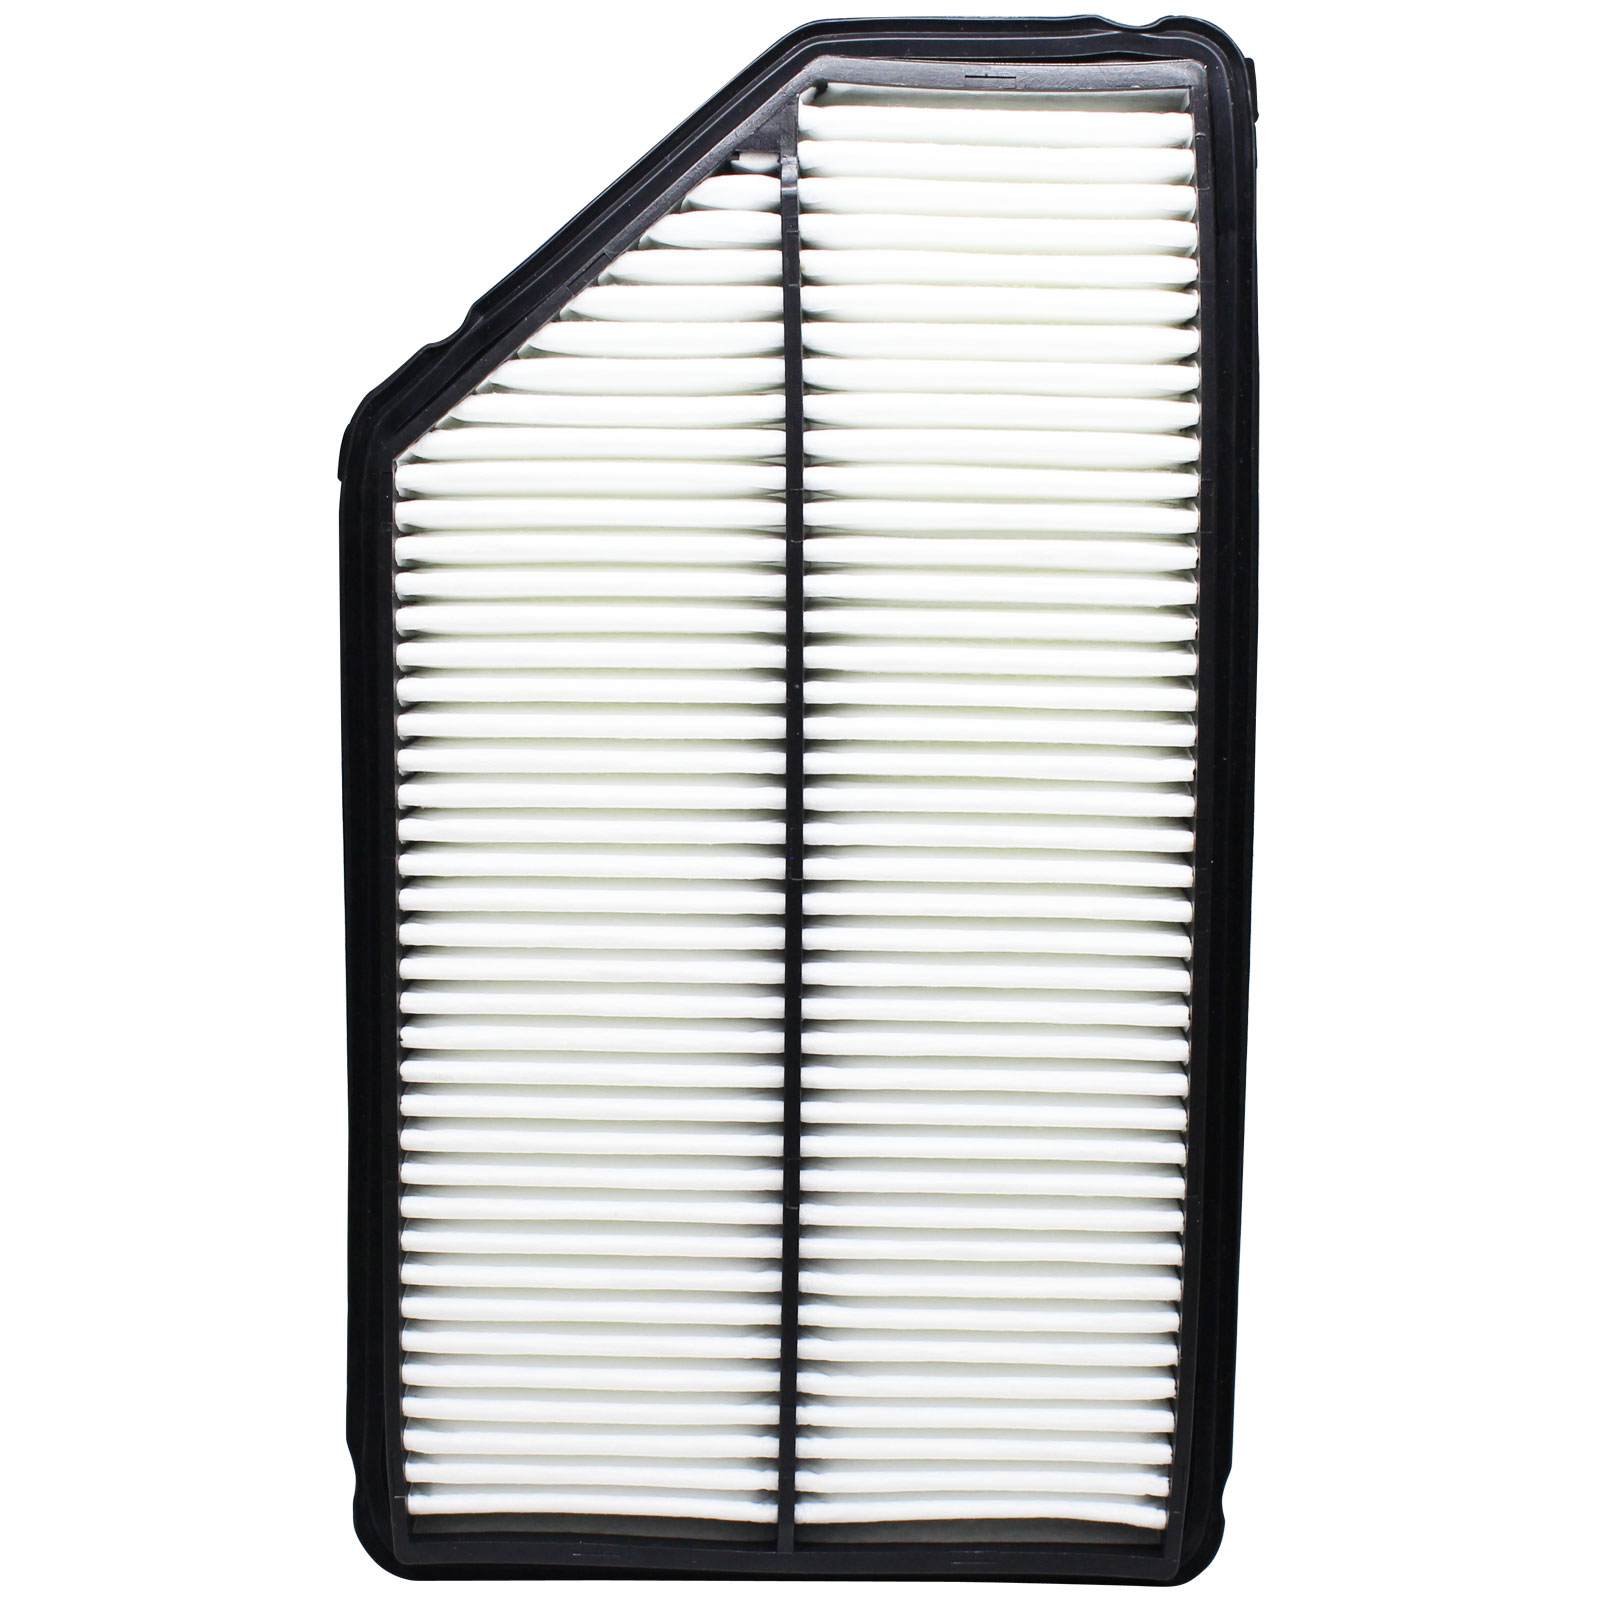 Air Filter Clearner Replacement For HONDA CR-V 2007 2008 2009 OEM 17220-RZA-000